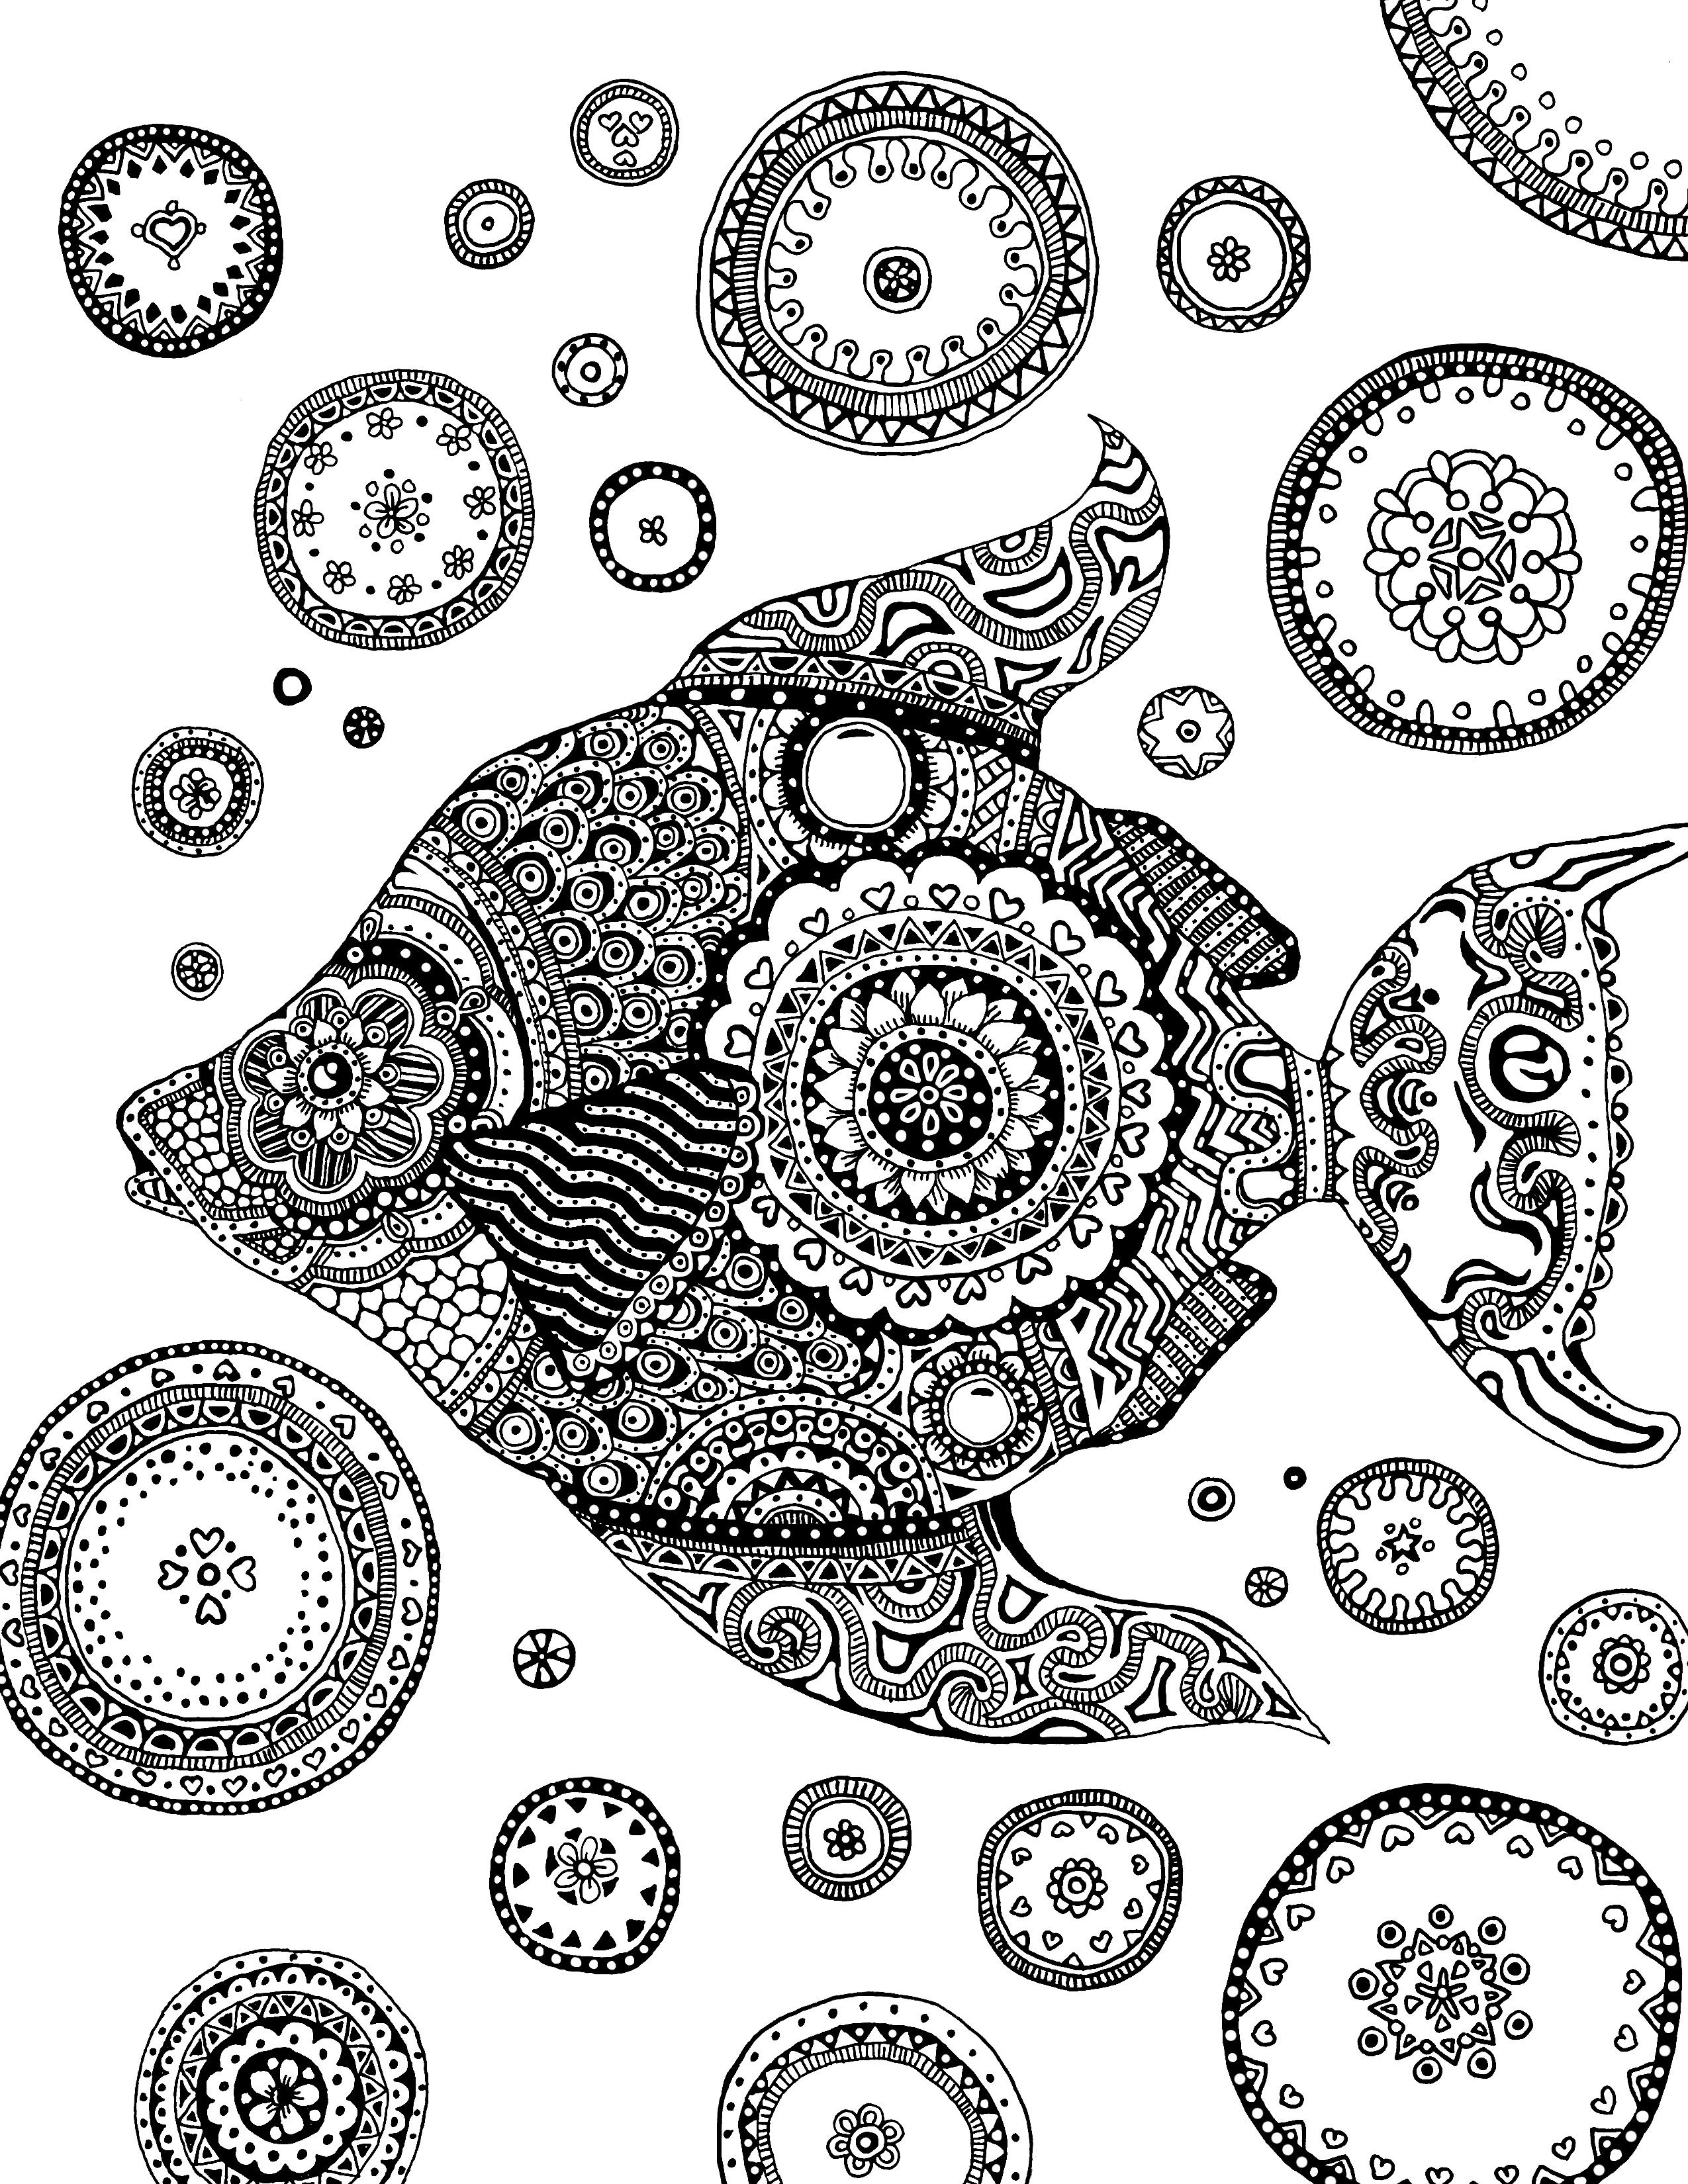 underwater bubbles coloring pages - photo#29